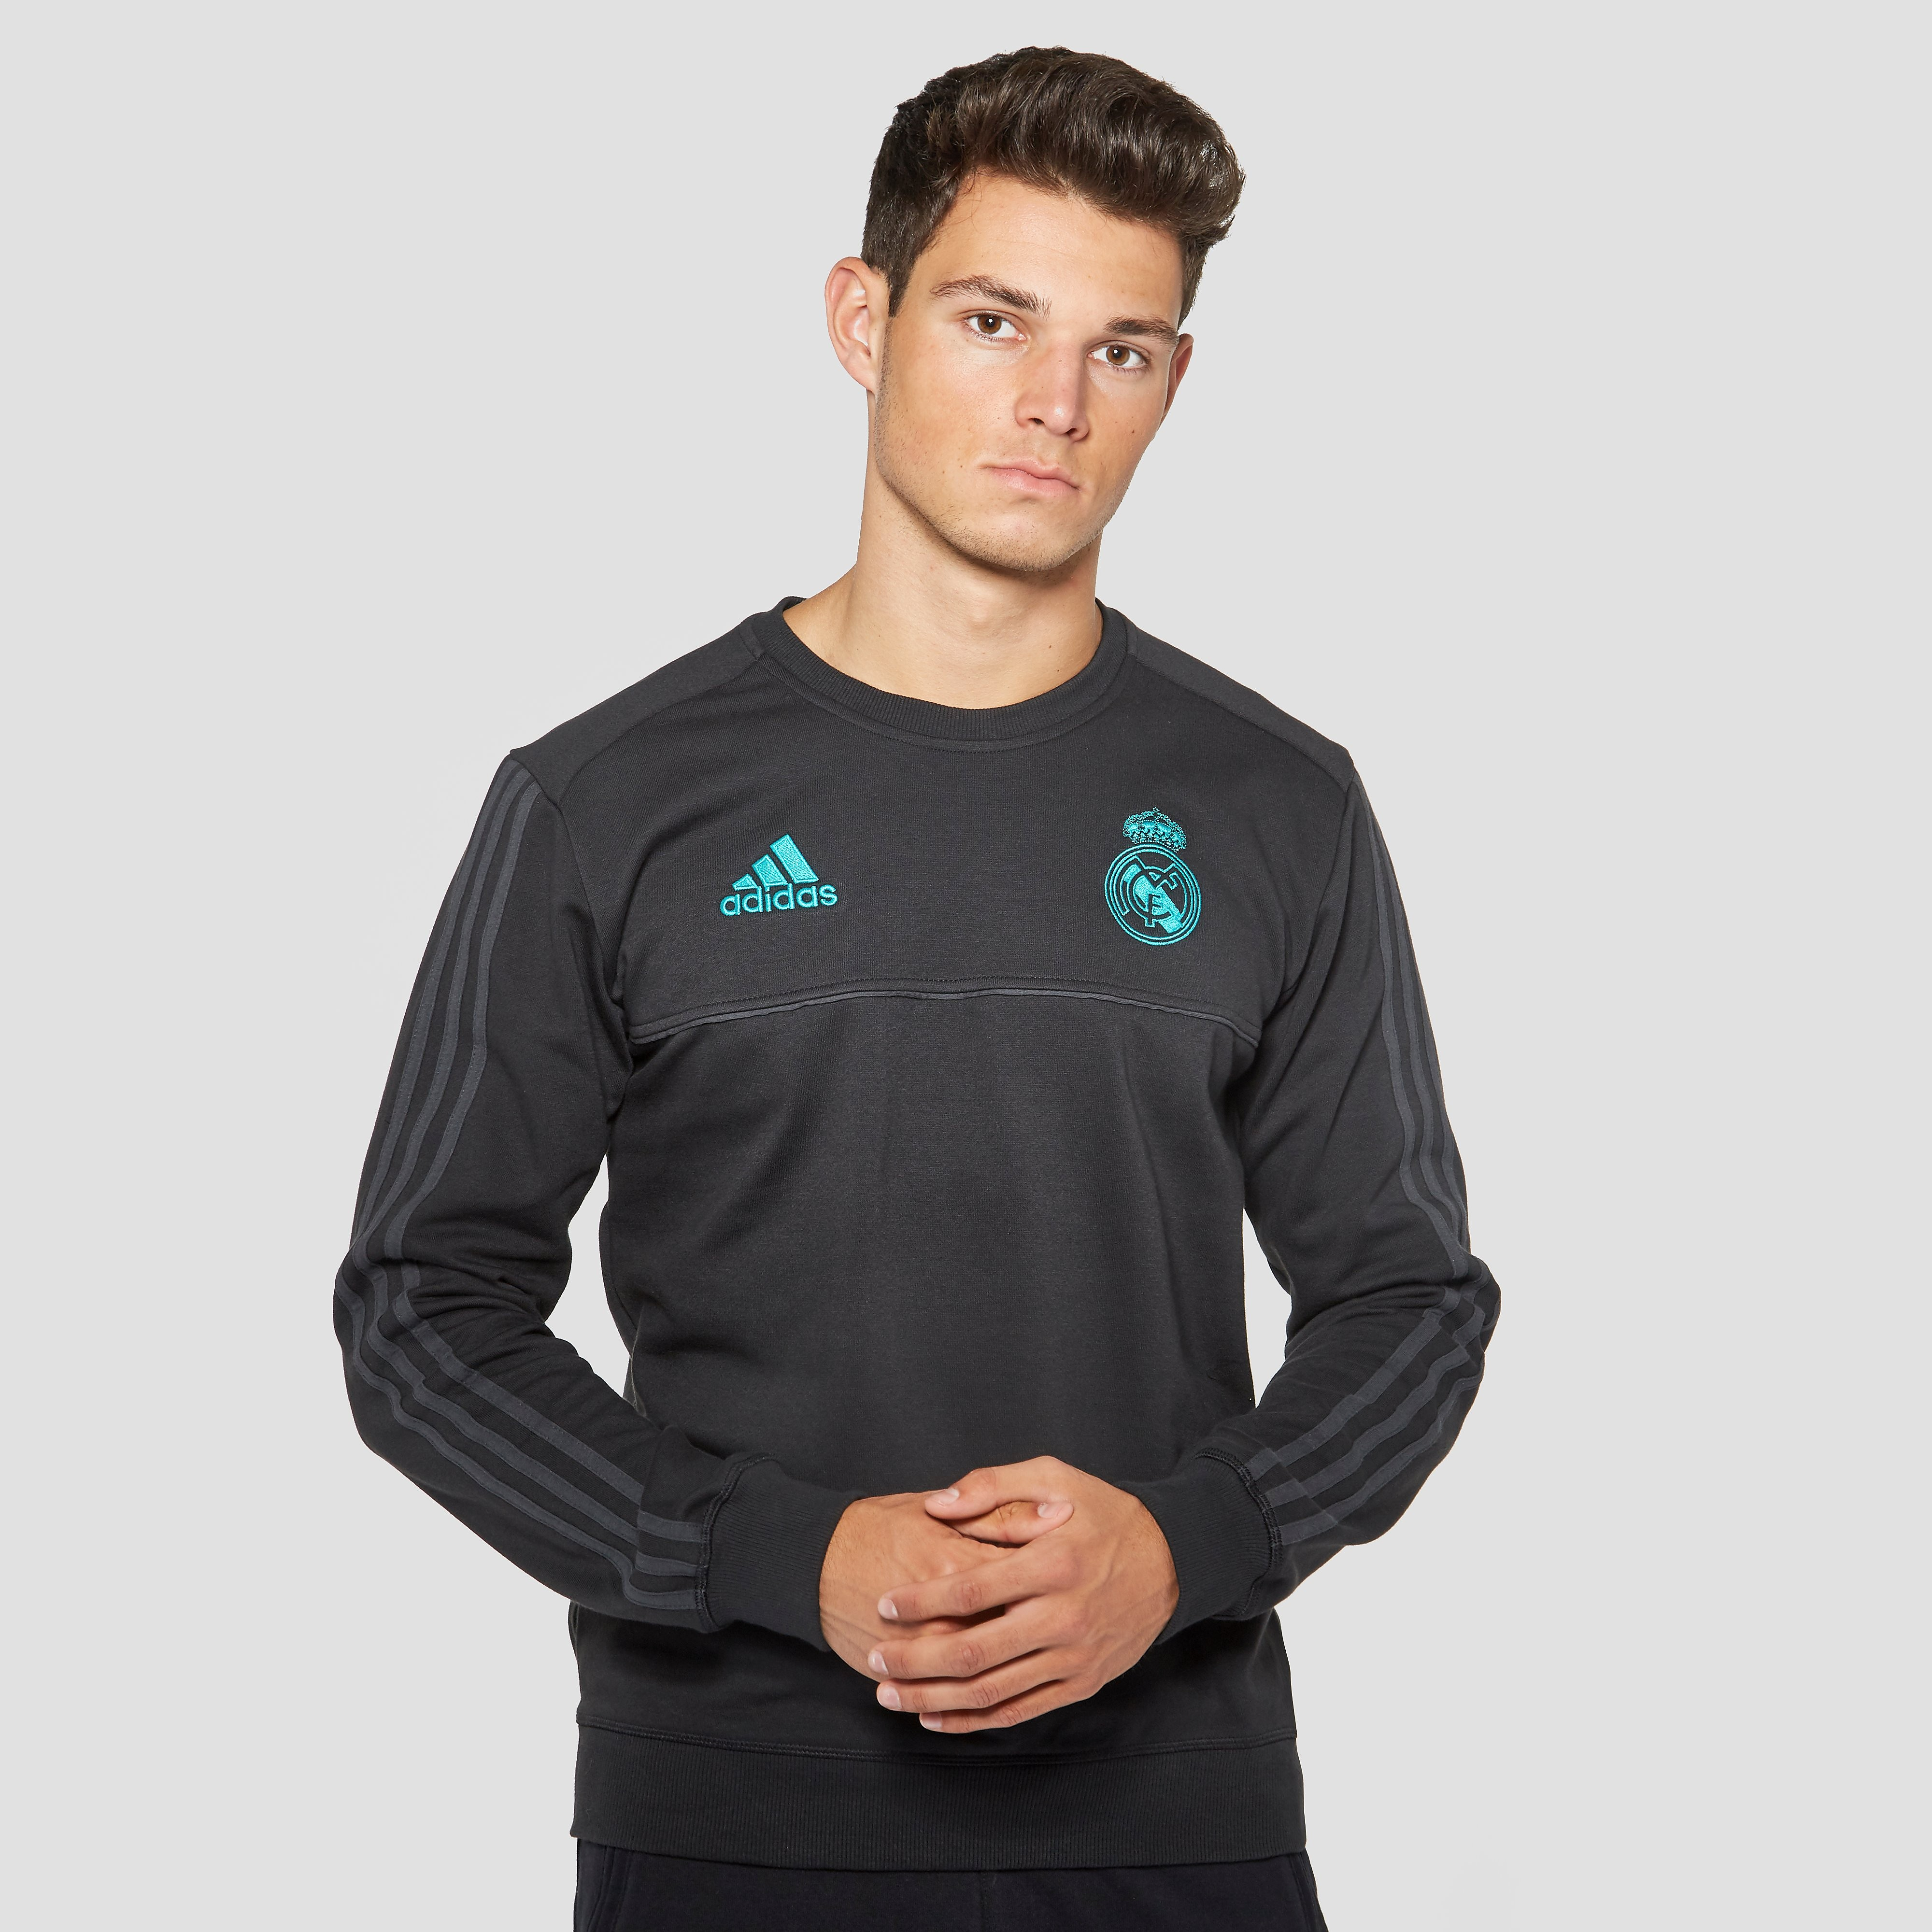 ADIDAS REAL MADRID SWEATER ZWART/GROEN HEREN